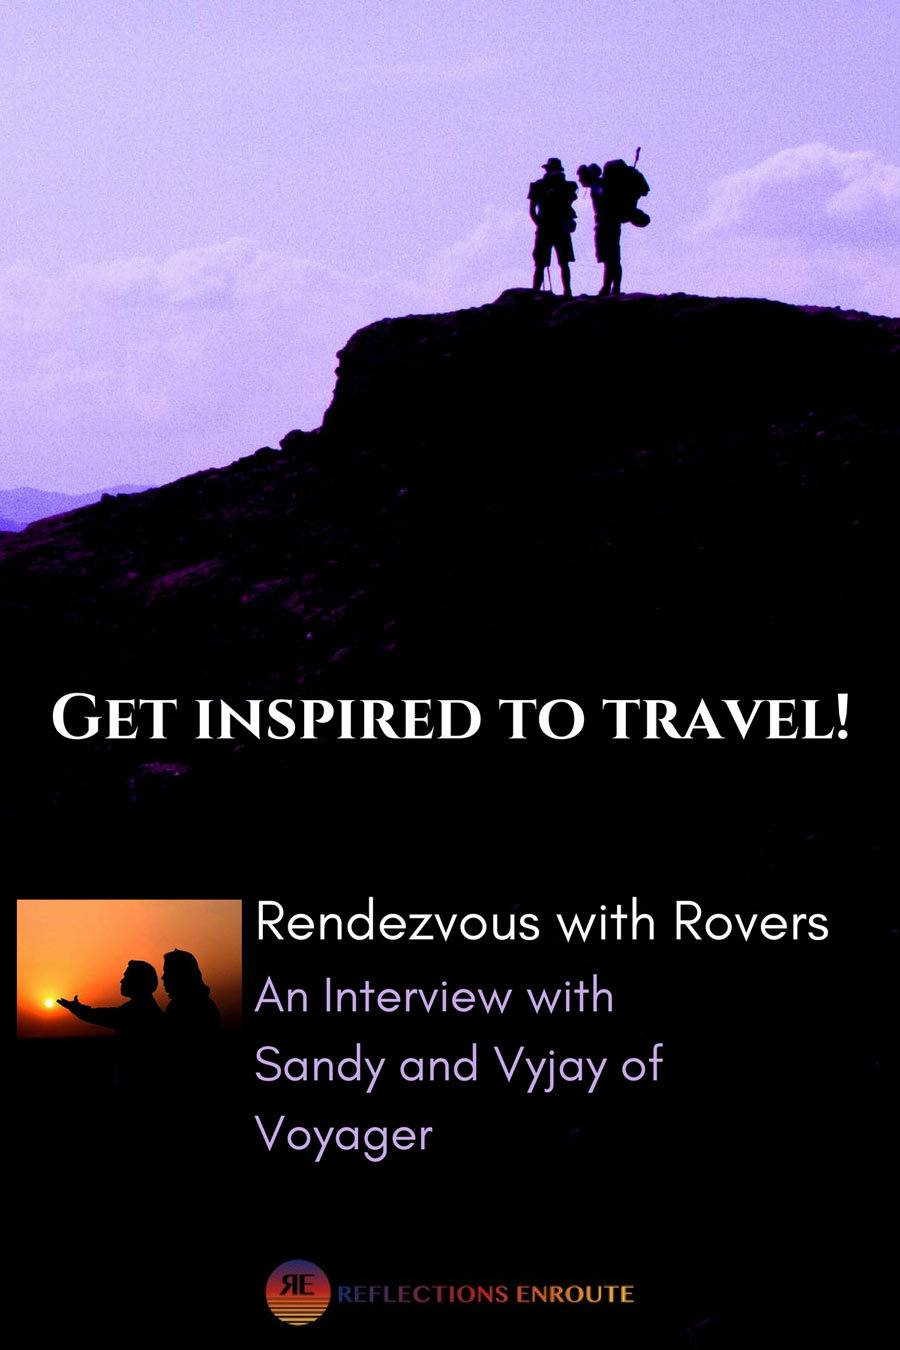 An interview with Sandy and Vyjay, top travel bloggers.